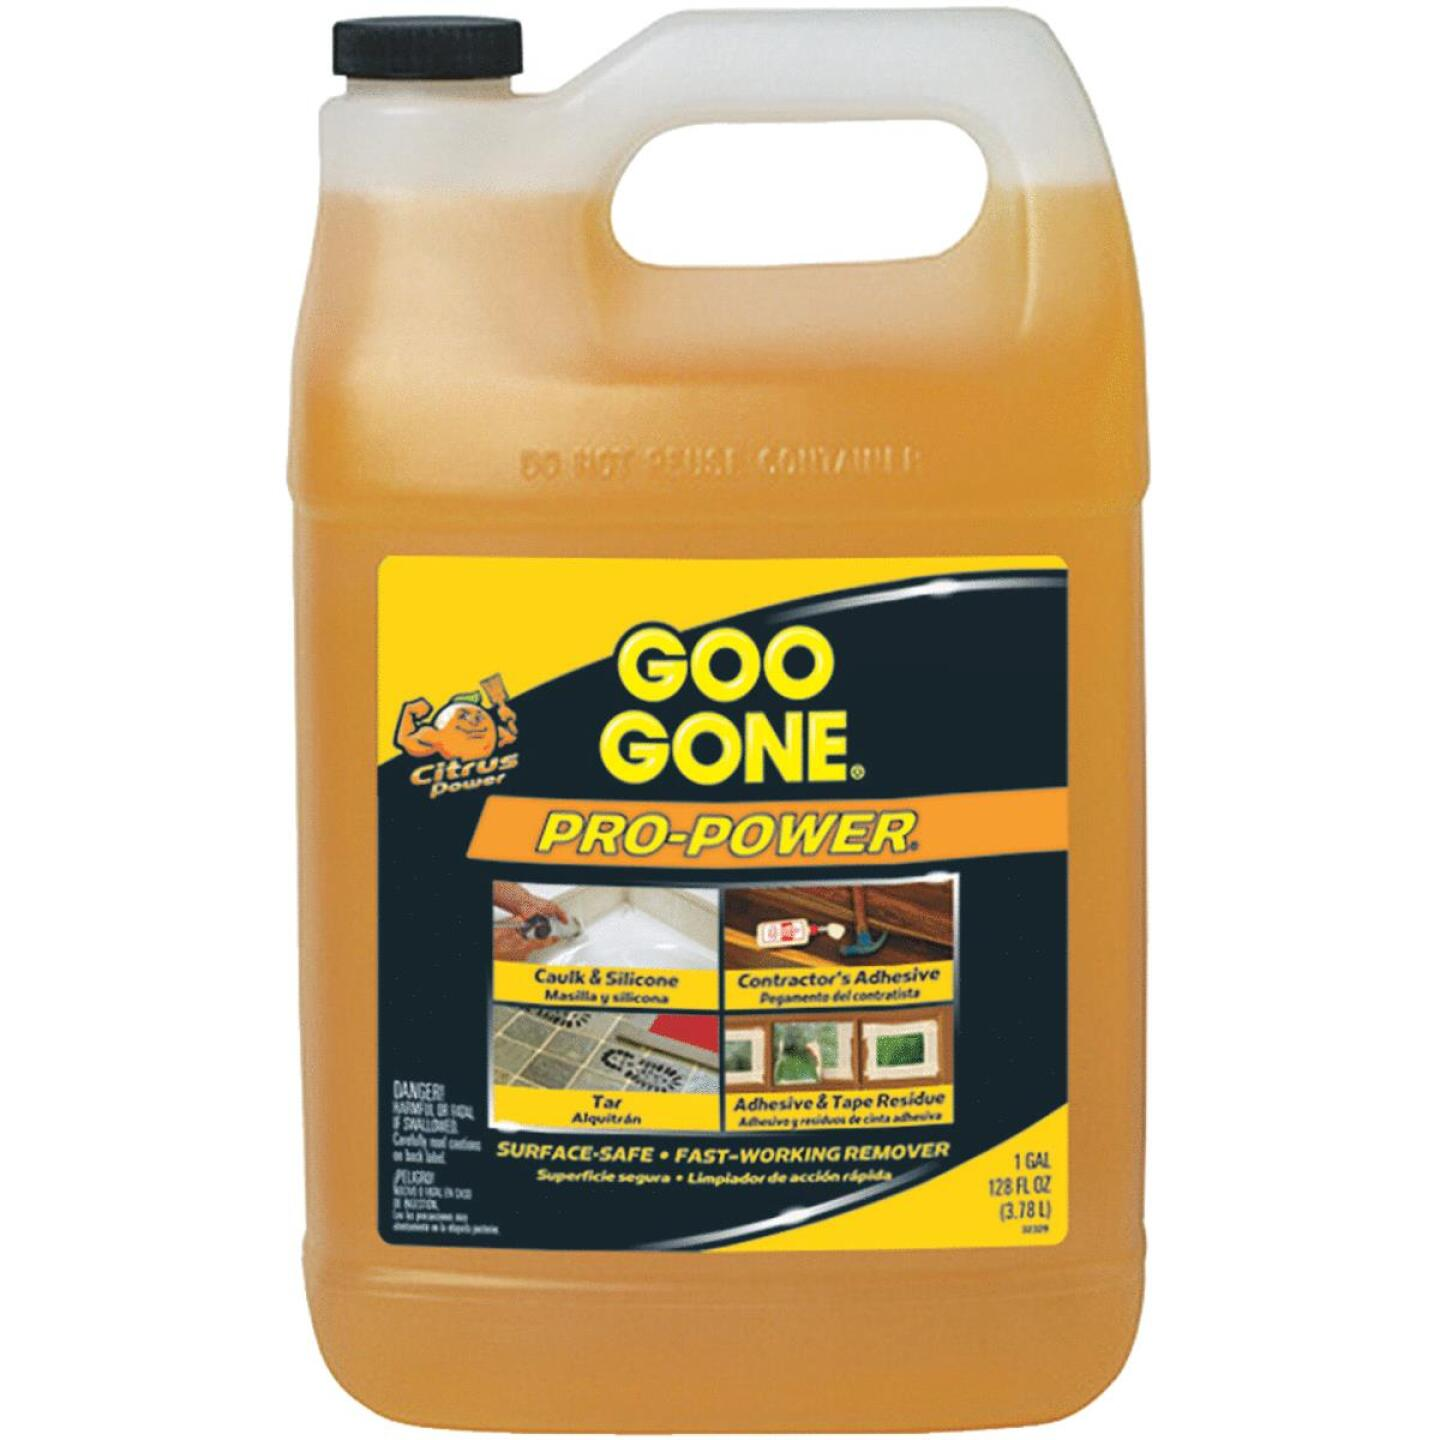 Goo Gone 1 Gal. Pro-Power Adhesive Remover Image 308